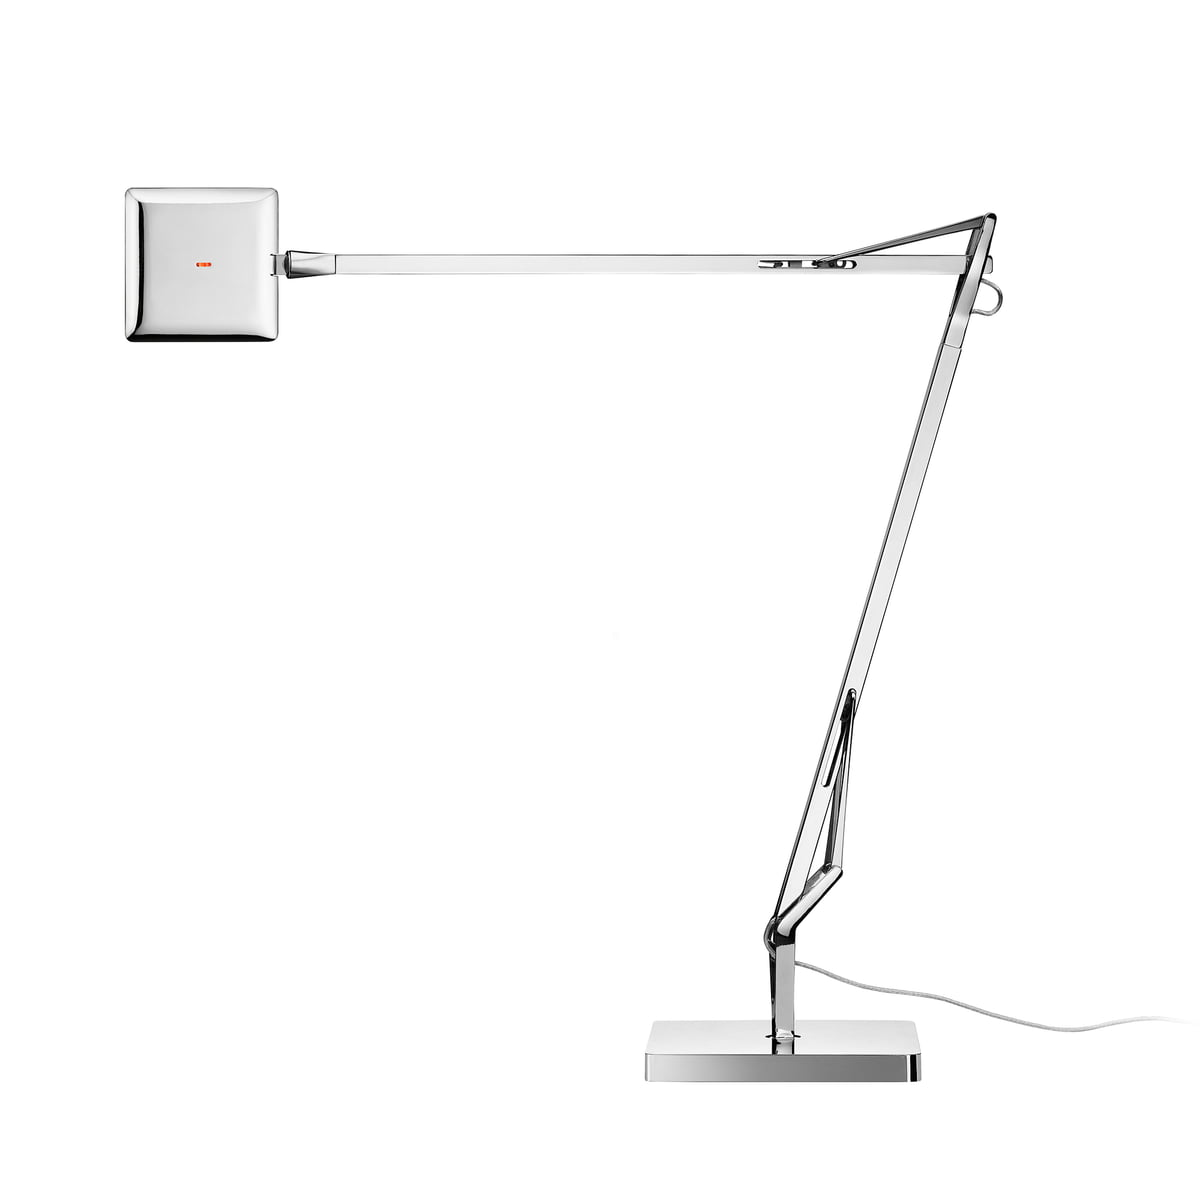 Kelvin edge table lamp by flos in the shop the flos kelvin edge c table lamp in chrome mozeypictures Choice Image